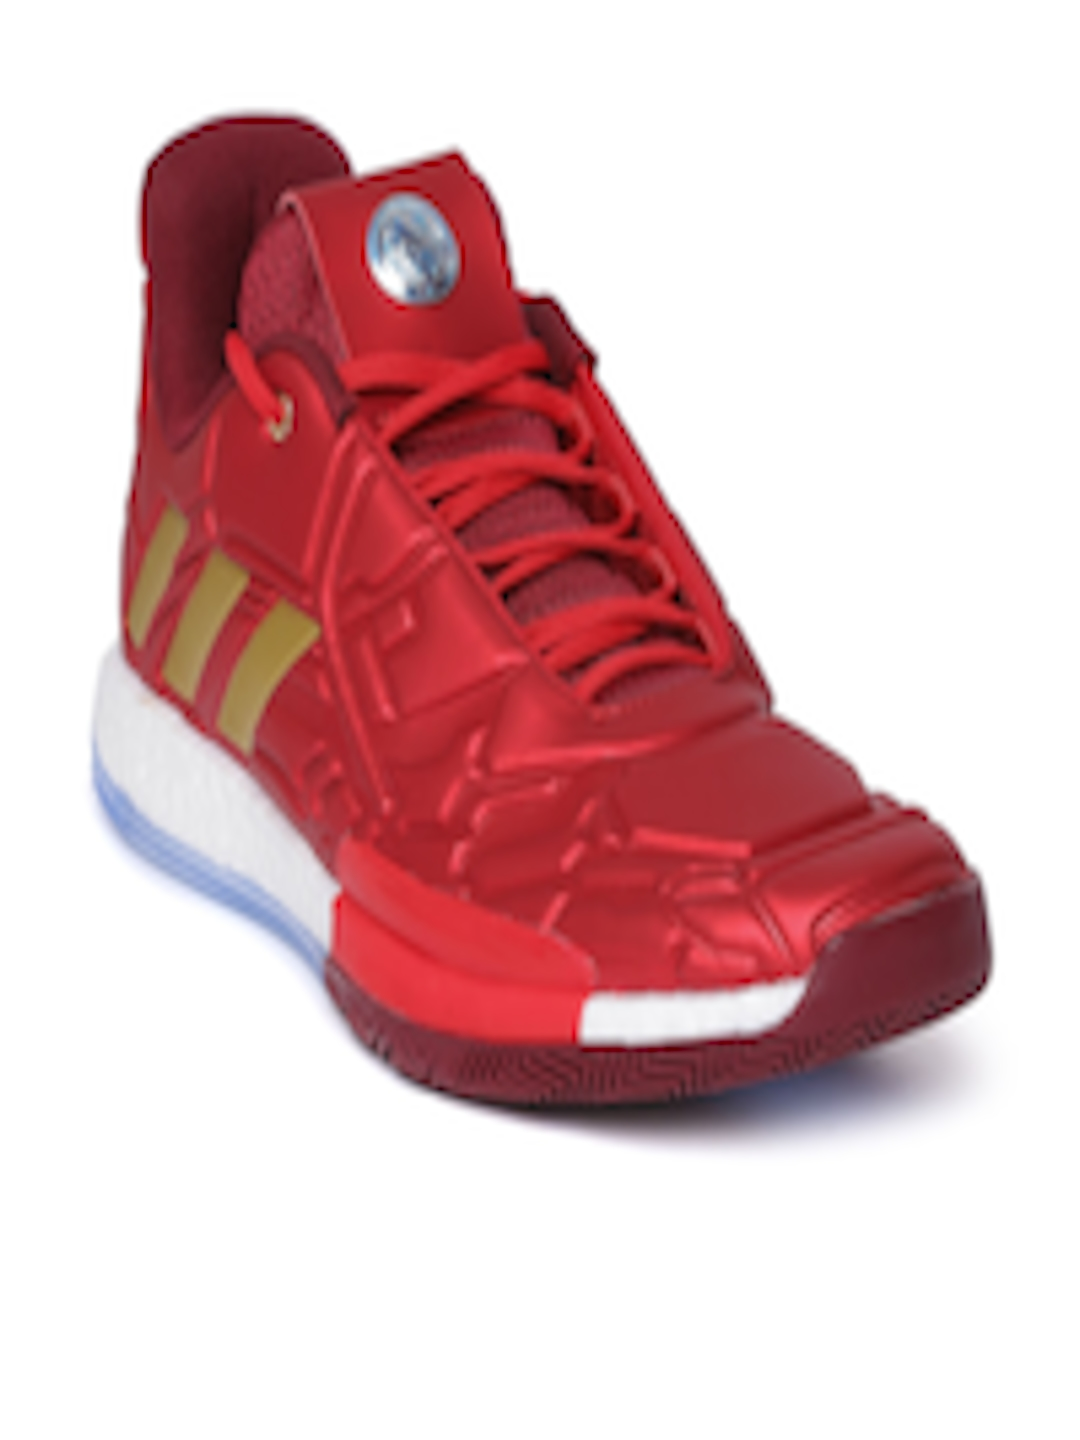 15d905444 Buy ADIDAS Men Red Harden Vol. 3 Iron Man Basketball Shoes - - Footwear for  Men